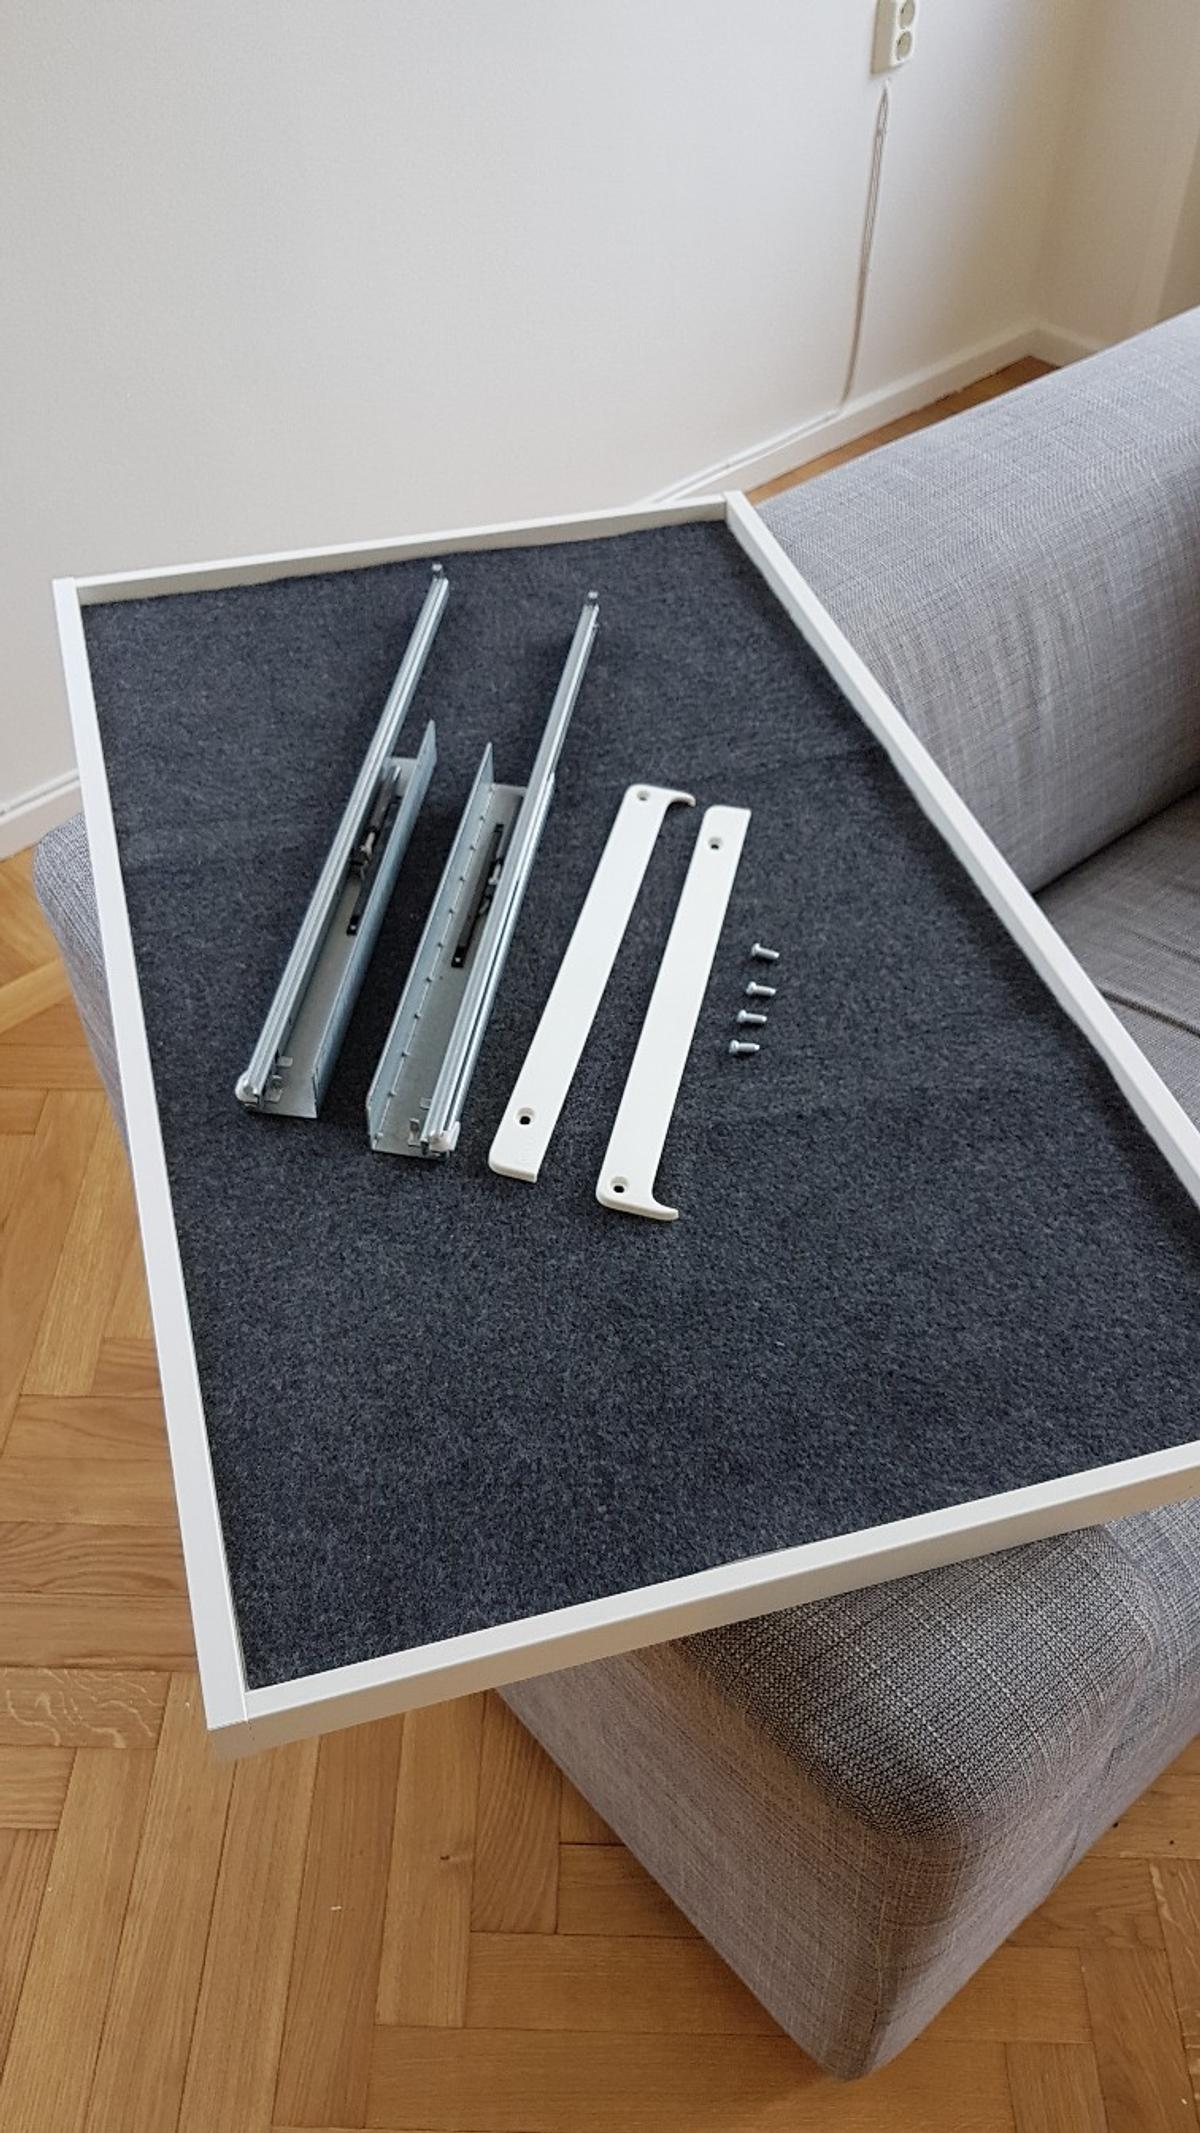 Kanon Ikea Komplement Pax hyllplan in 121 46 Stockholm for SEK 100.00 ED-43